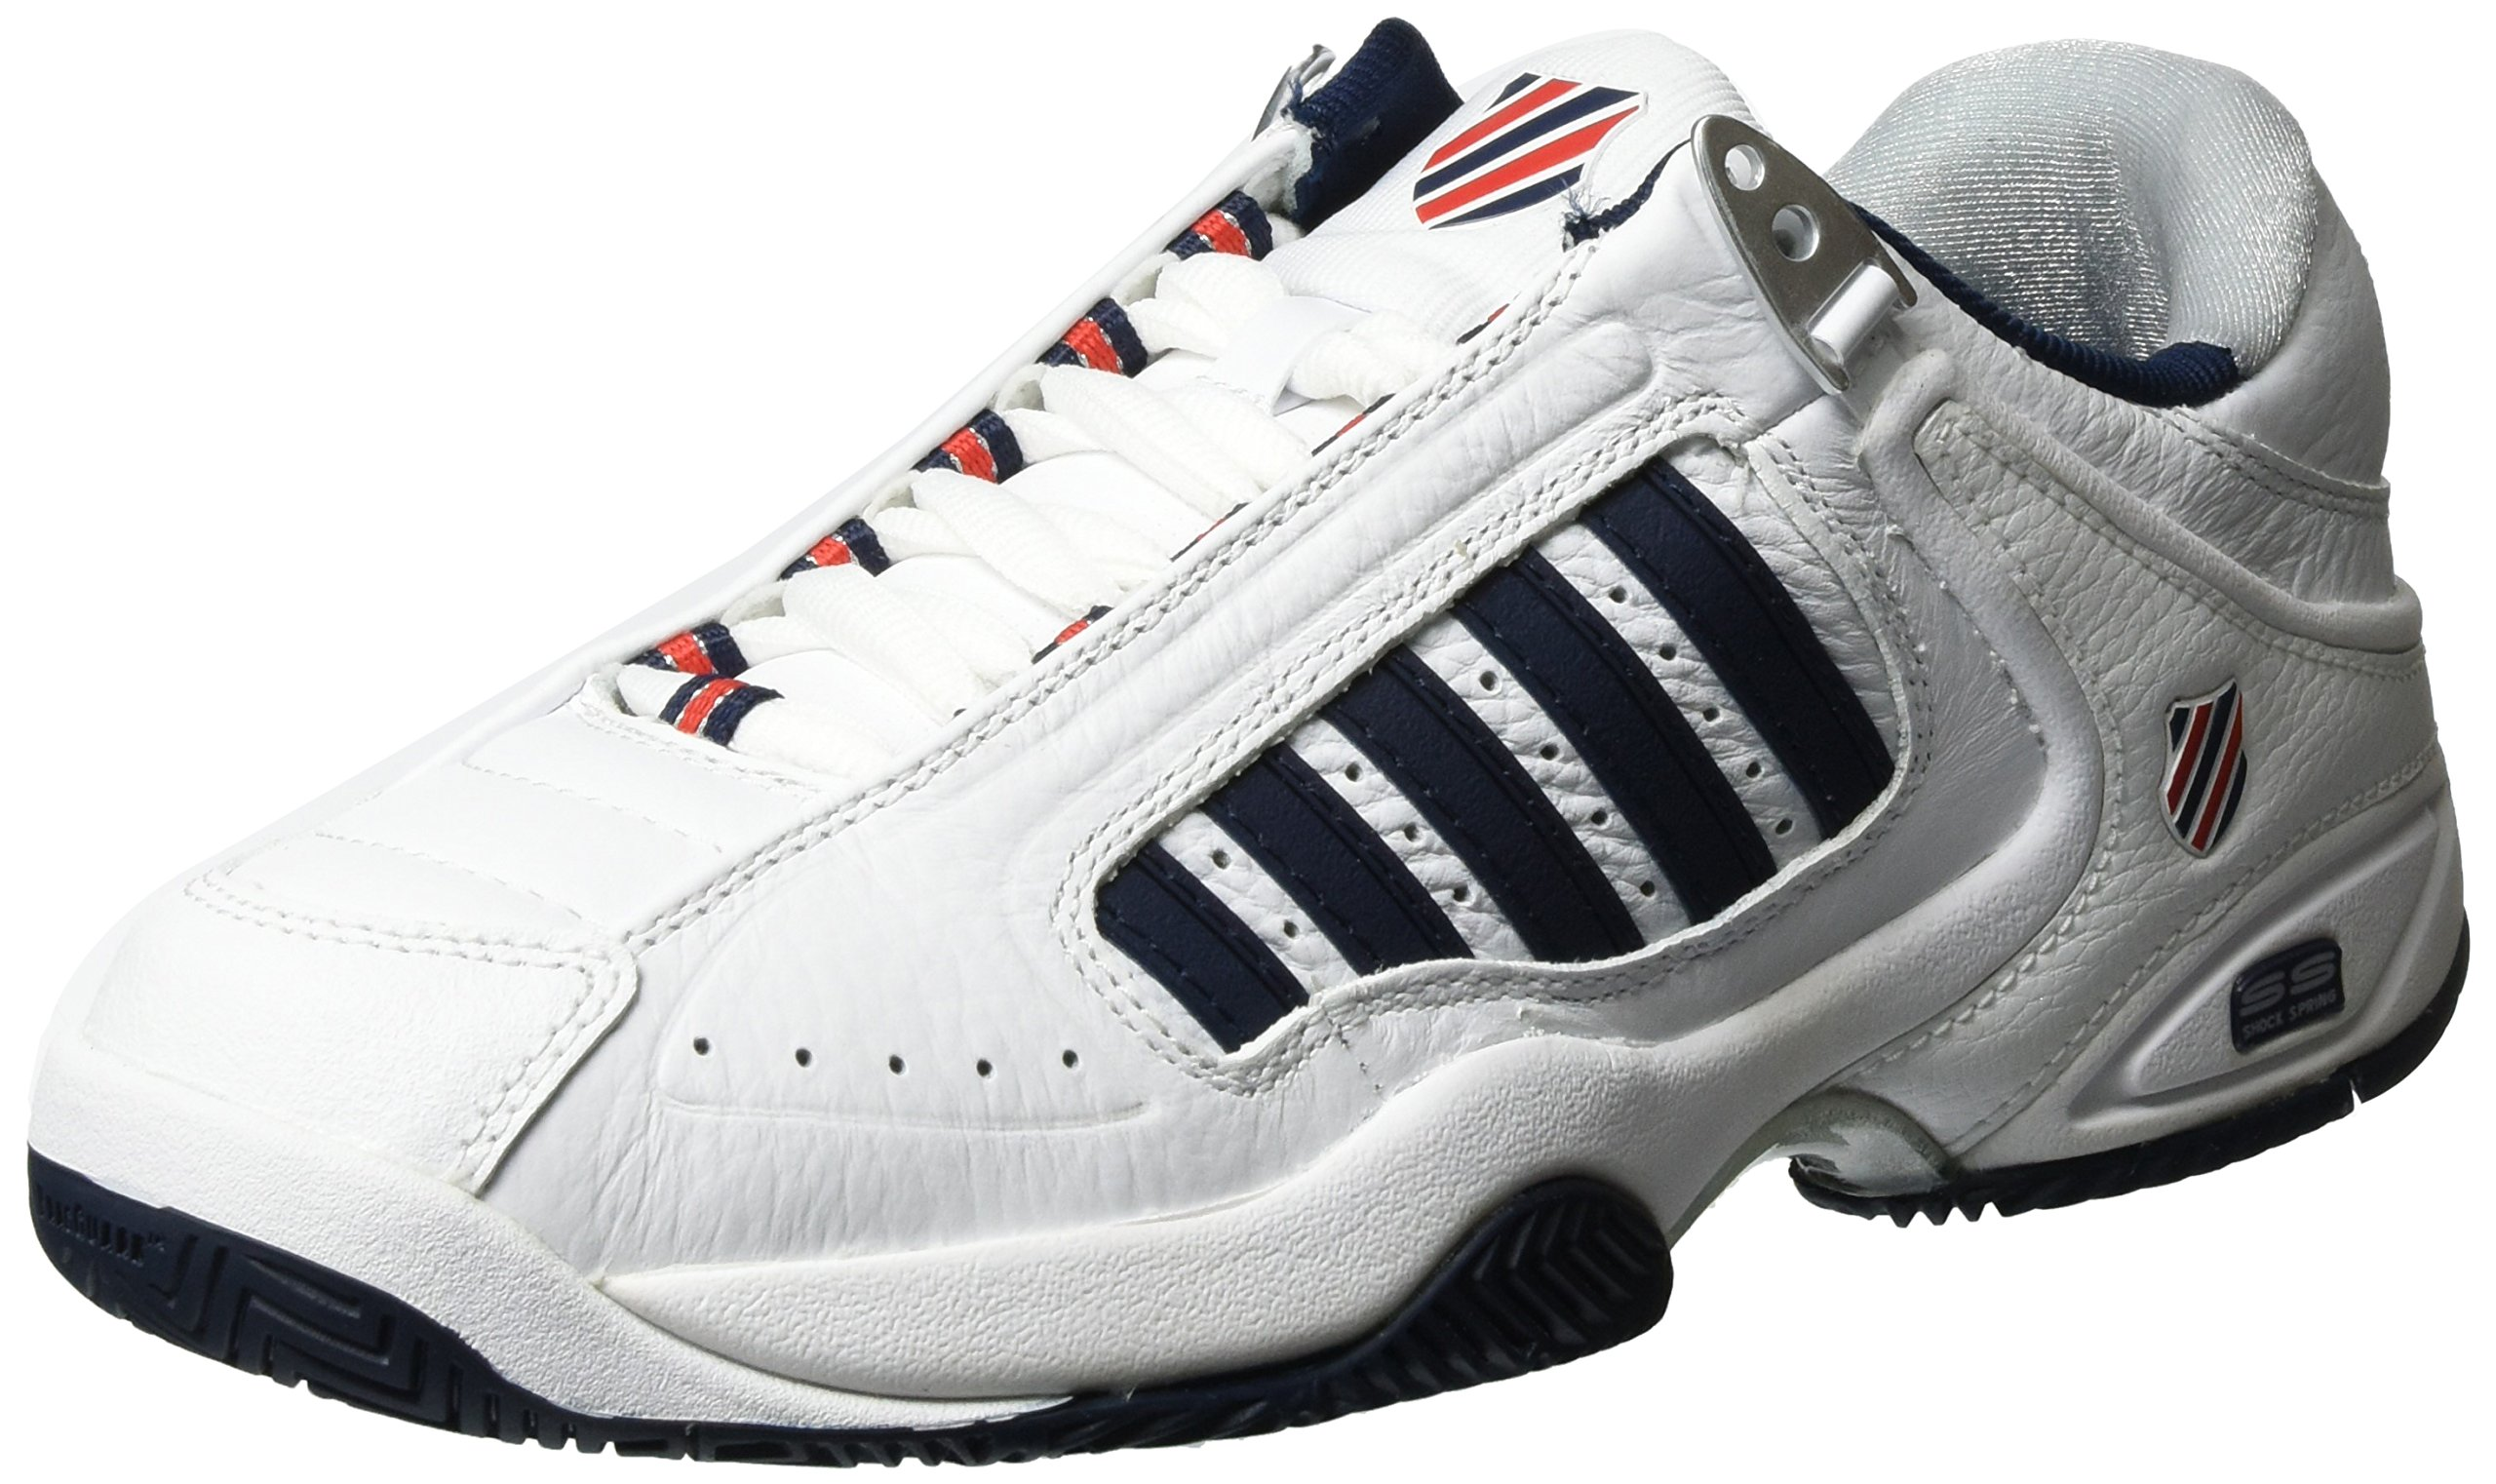 RsChaussures swiss dressblues De Defier Eu Performance K 5 Tennis fieryred39 Homme Blancwhite NOv8nwm0